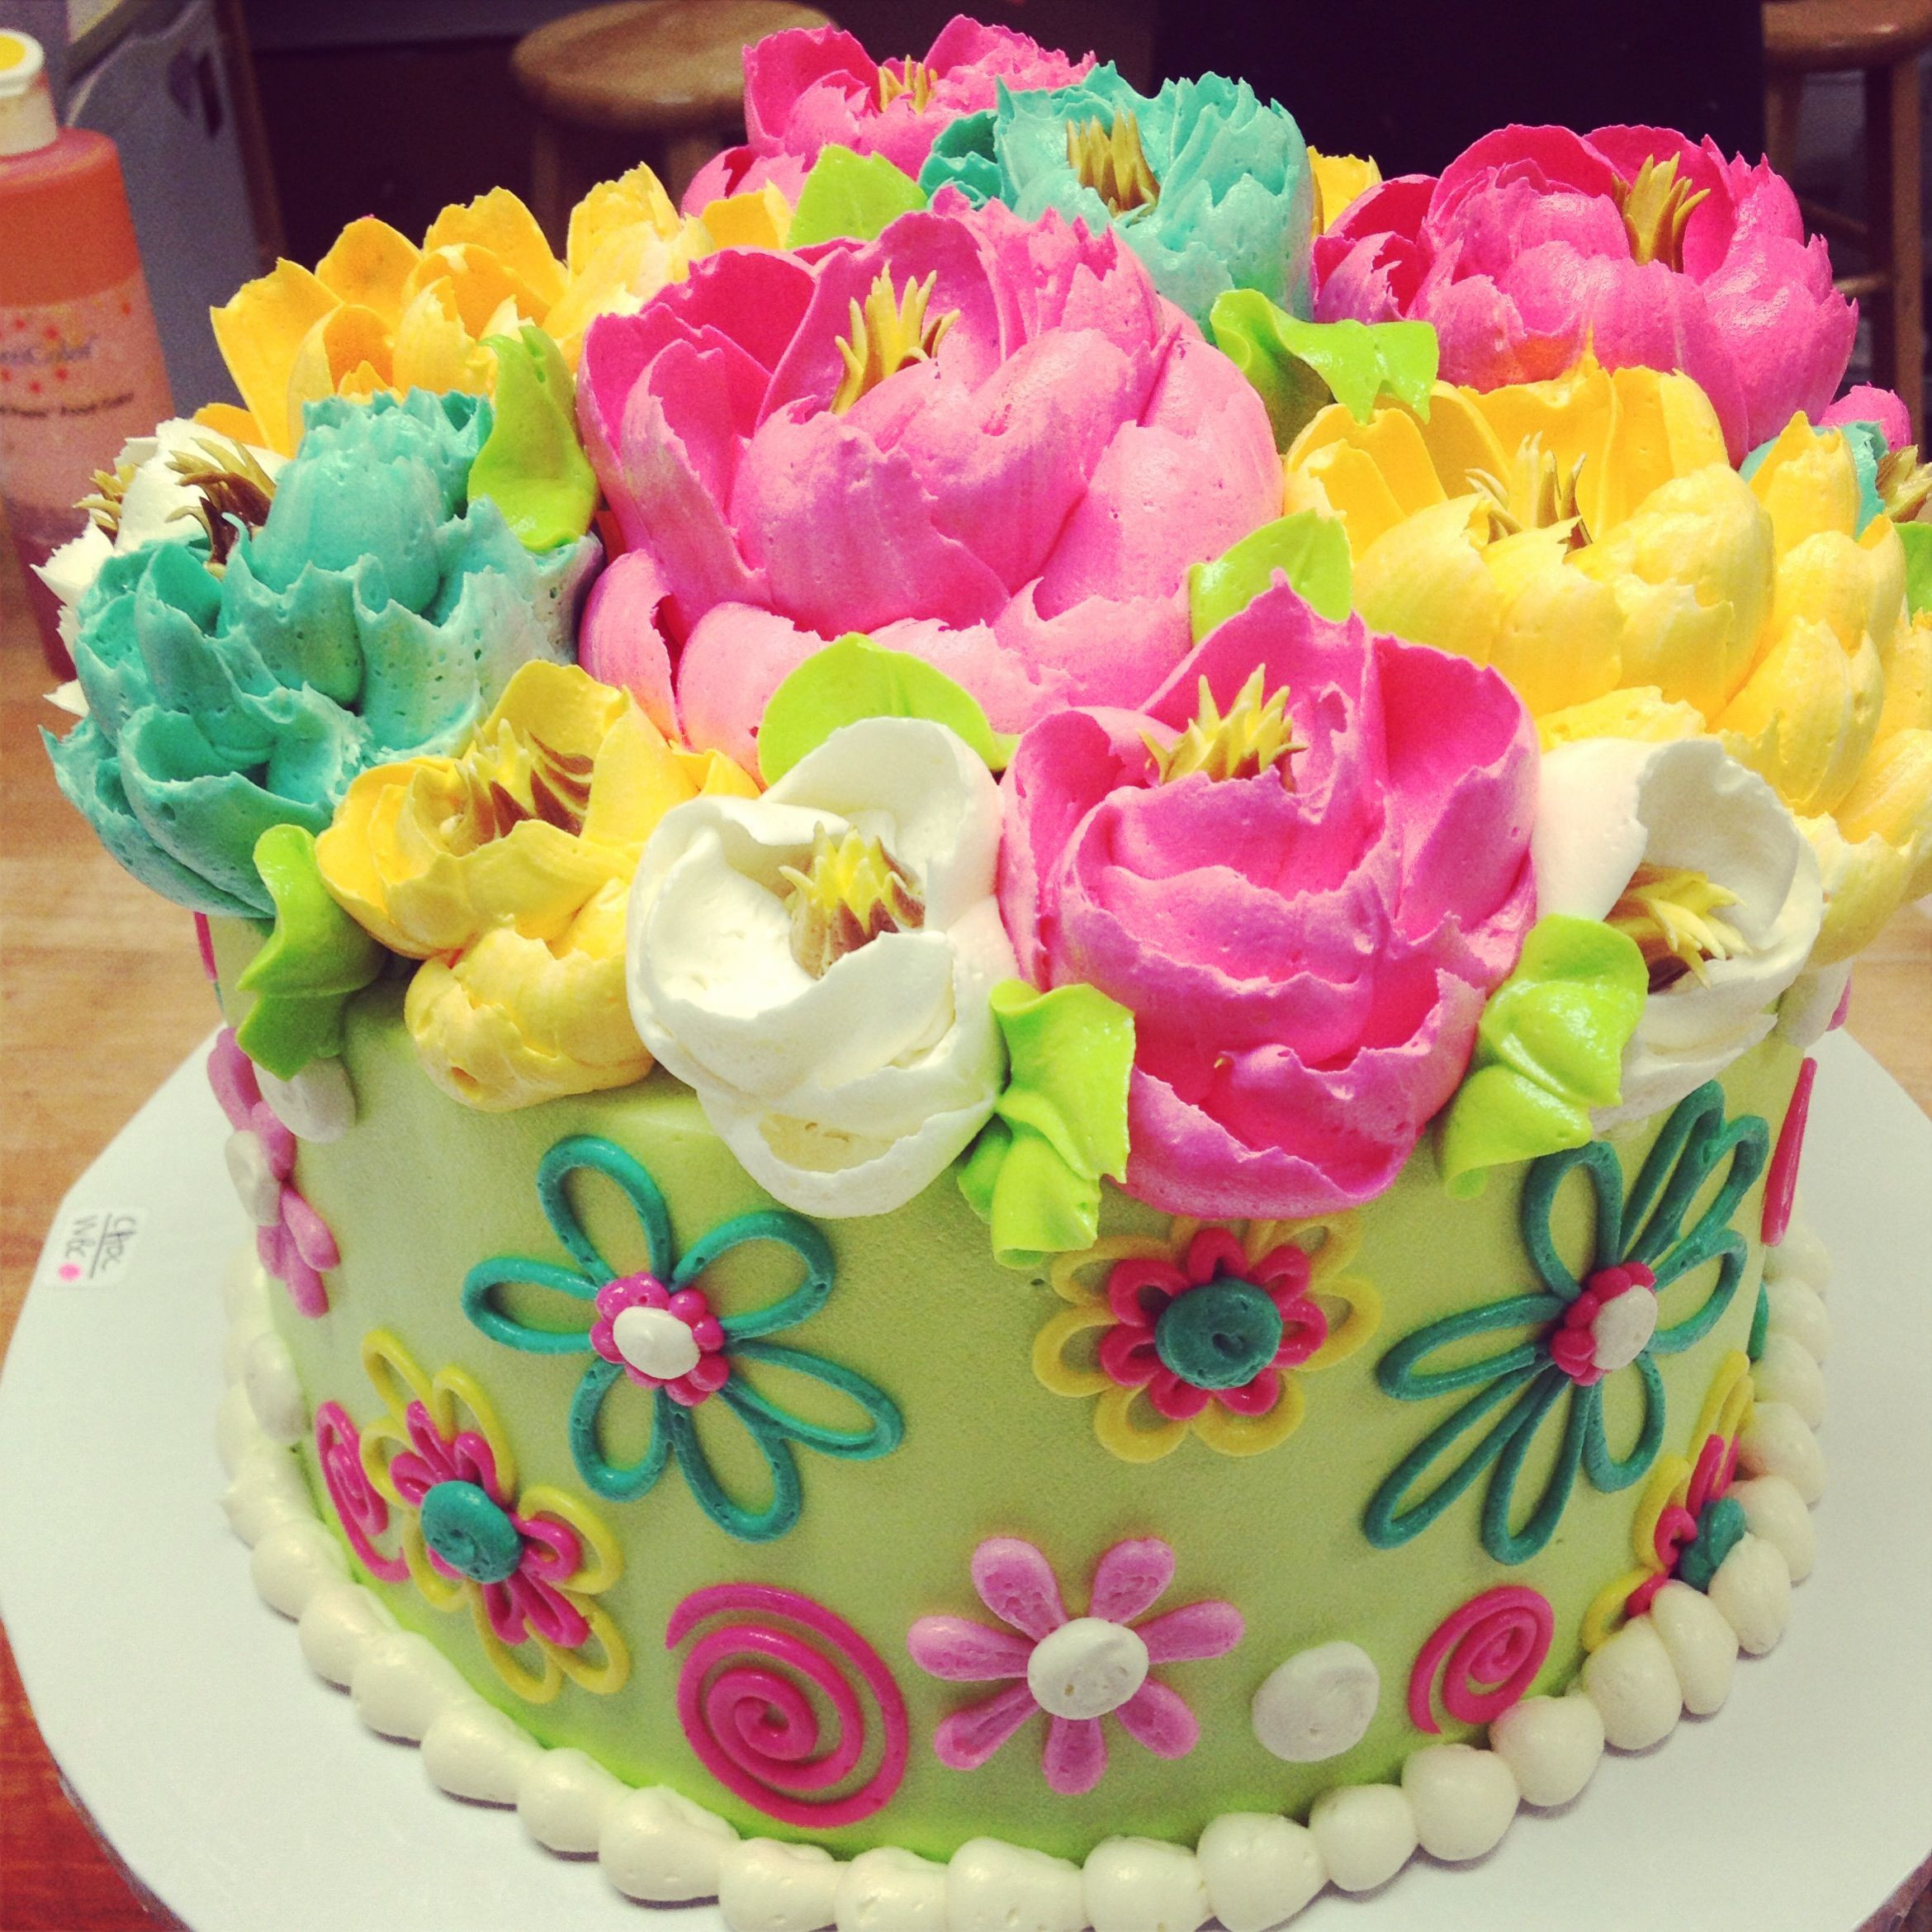 Best ideas about Birthday Cake Flowers . Save or Pin Adorable flower themed buttercream birthday cake from The Now.